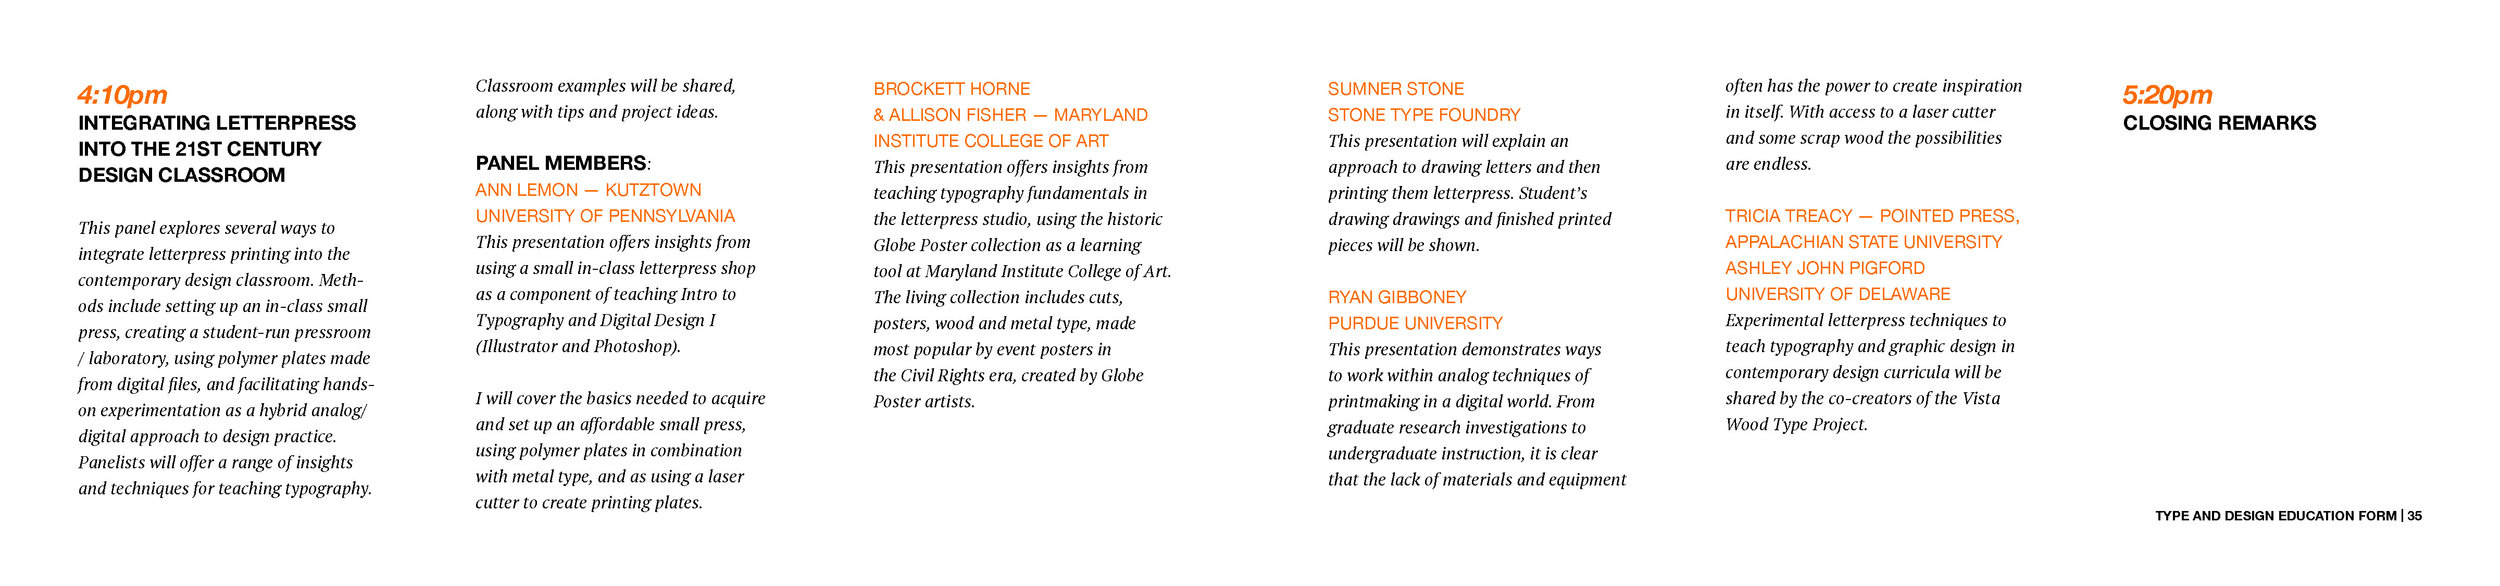 typecon_book_NEW_Page_18.jpg